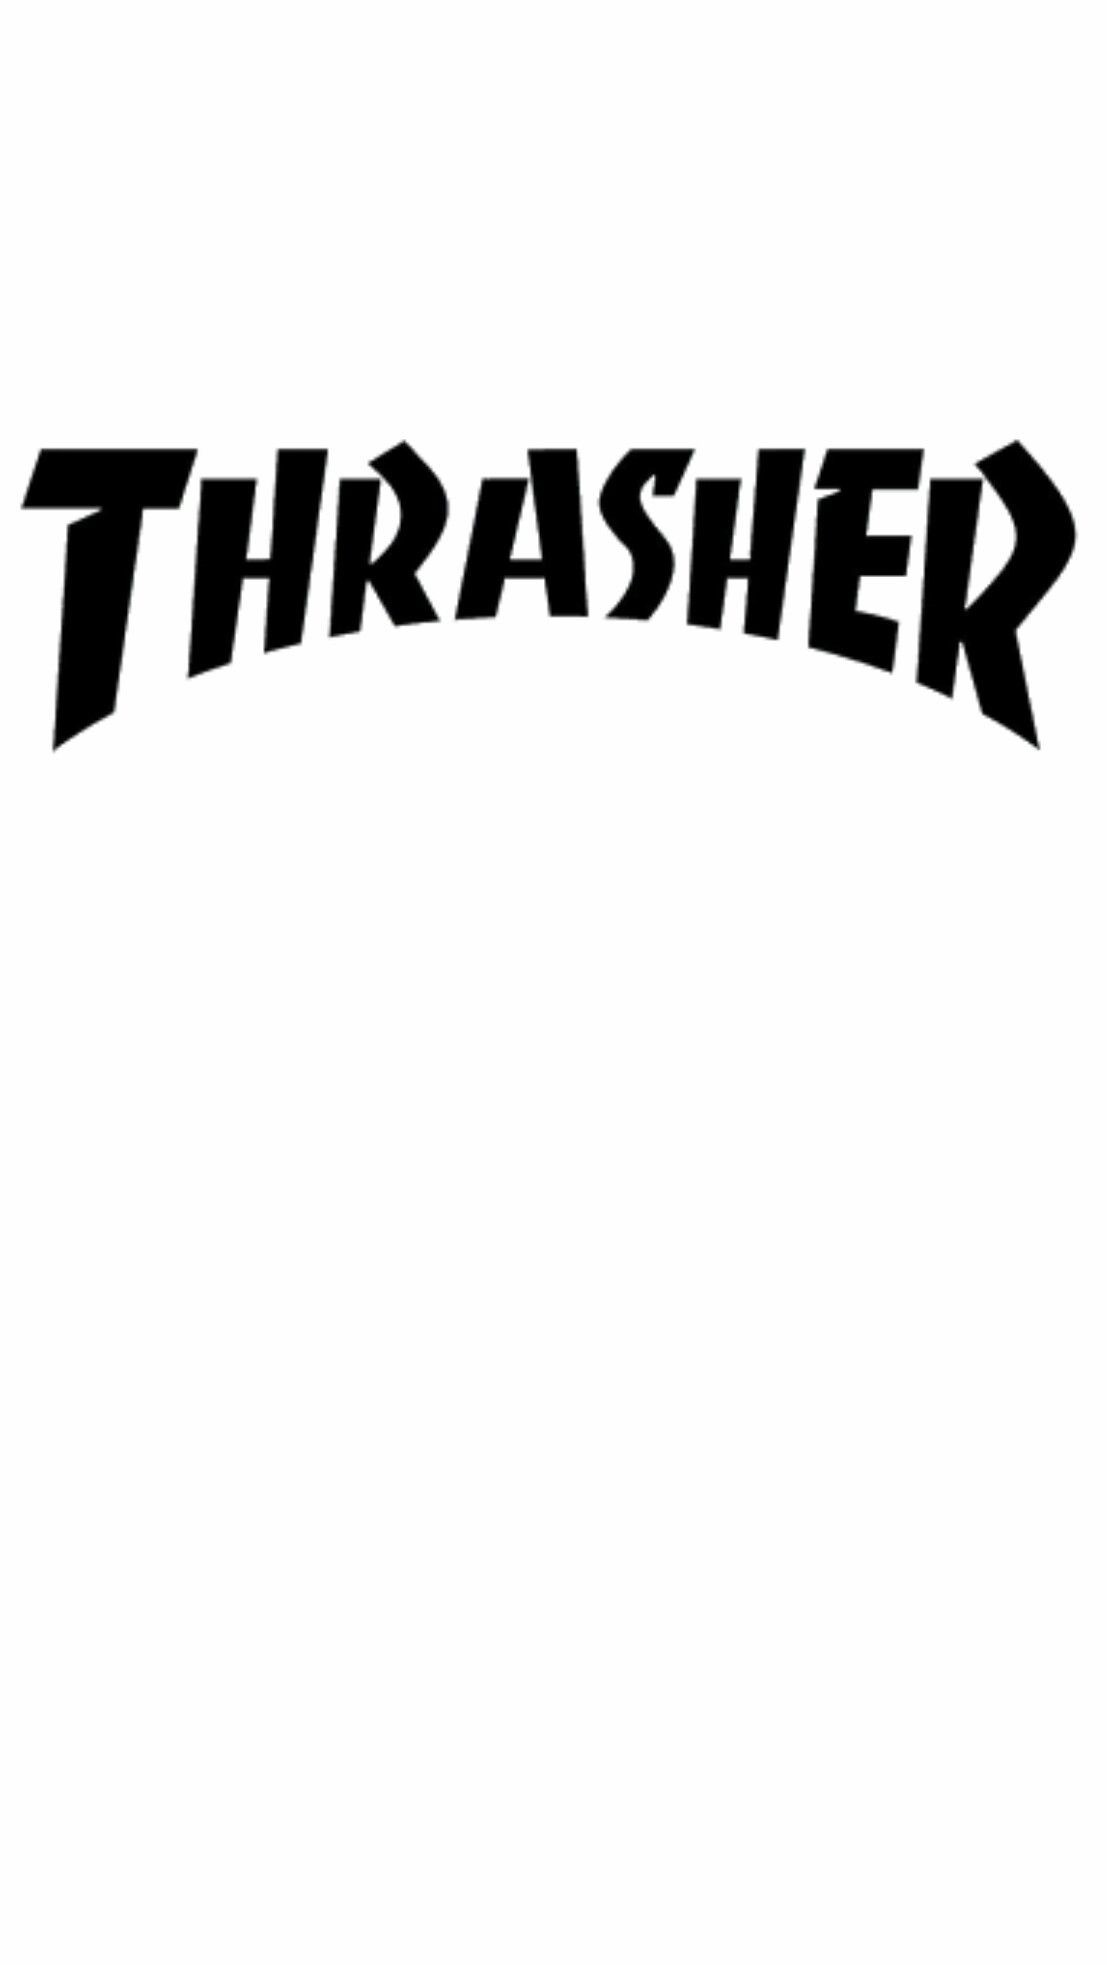 Thrasher Wallpaper Iphone 74 Images